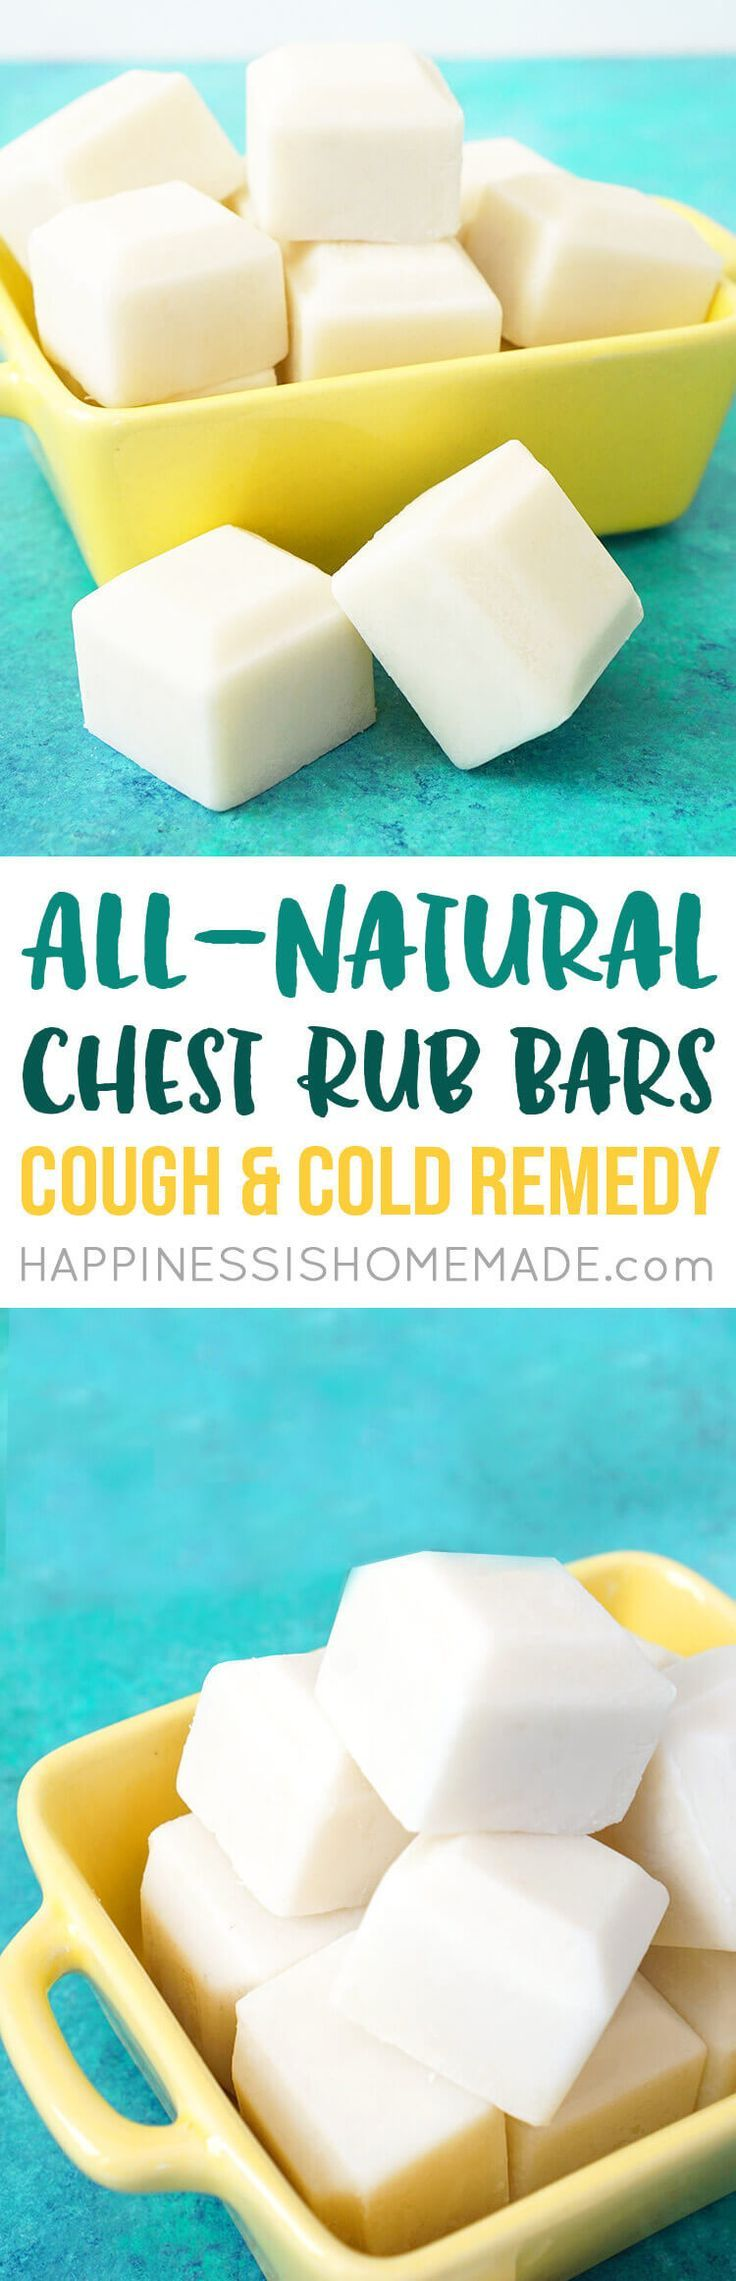 All-Natural Chest Rub Bars: Cough & Cold Remedy -These DIY chest rub bars are a healthy homemade cold remedy for coughing and congestion. Made with all-natural and non-toxic ingredients including shea butter, coconut oil, beeswax, and essential oils, these chest rub bars will help you breathe easier and help prevent your cold from coming back!